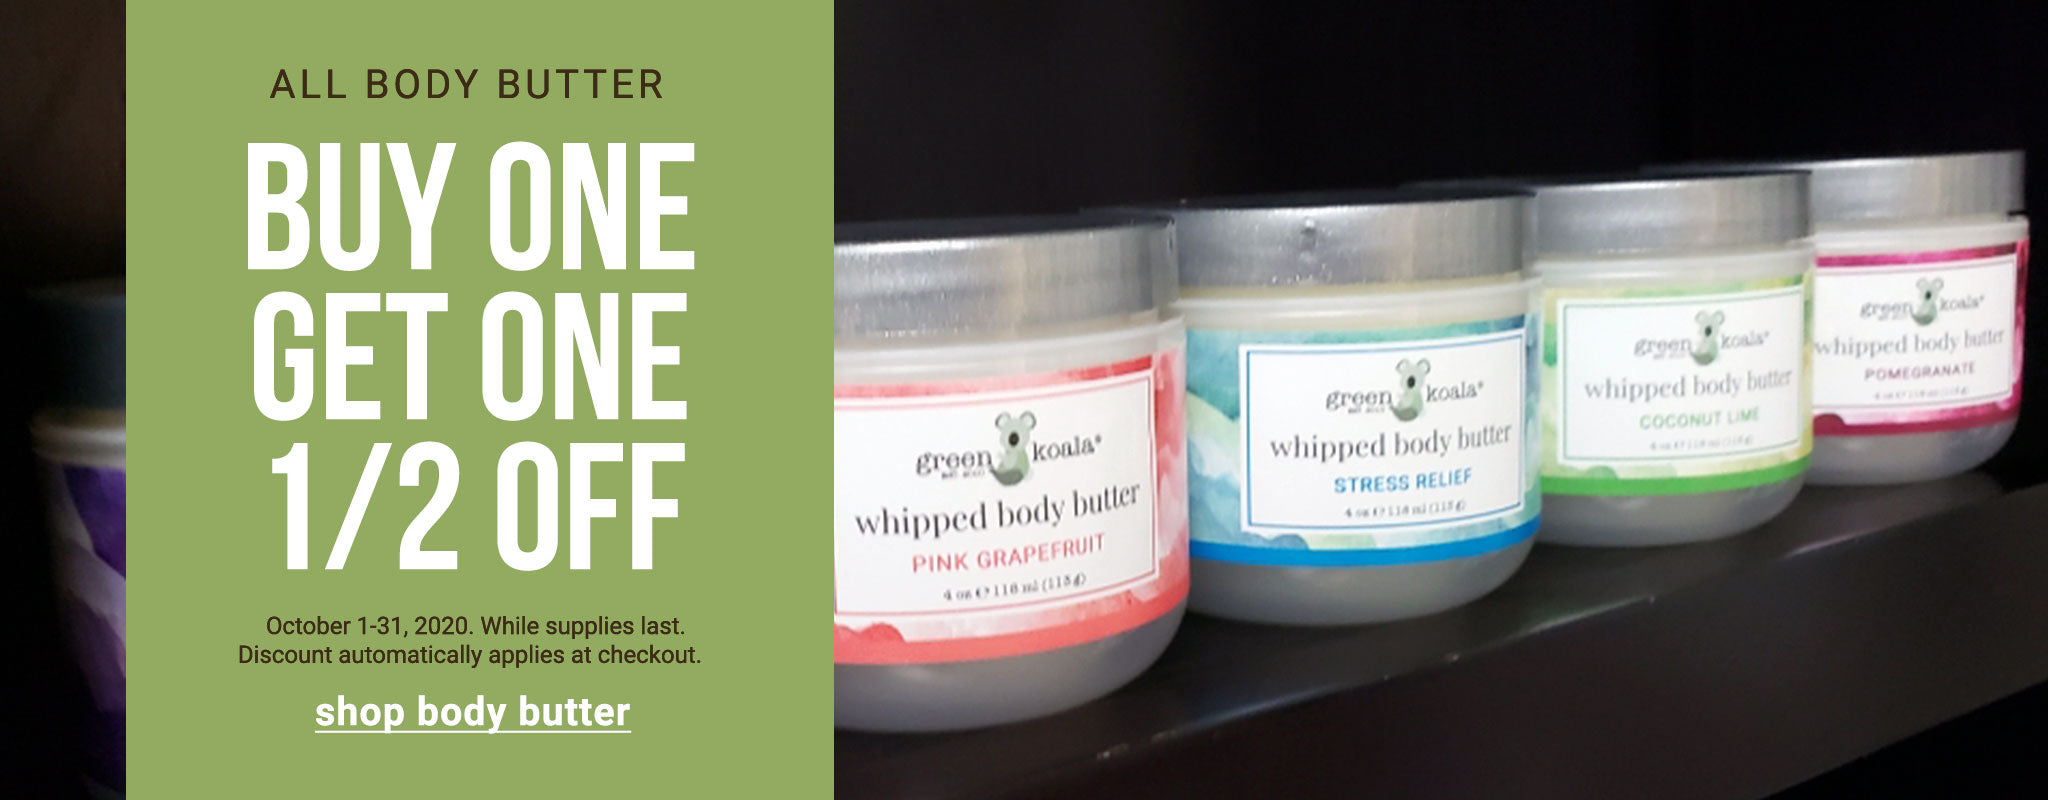 All Candles Buy 3 Get 1 Free!22